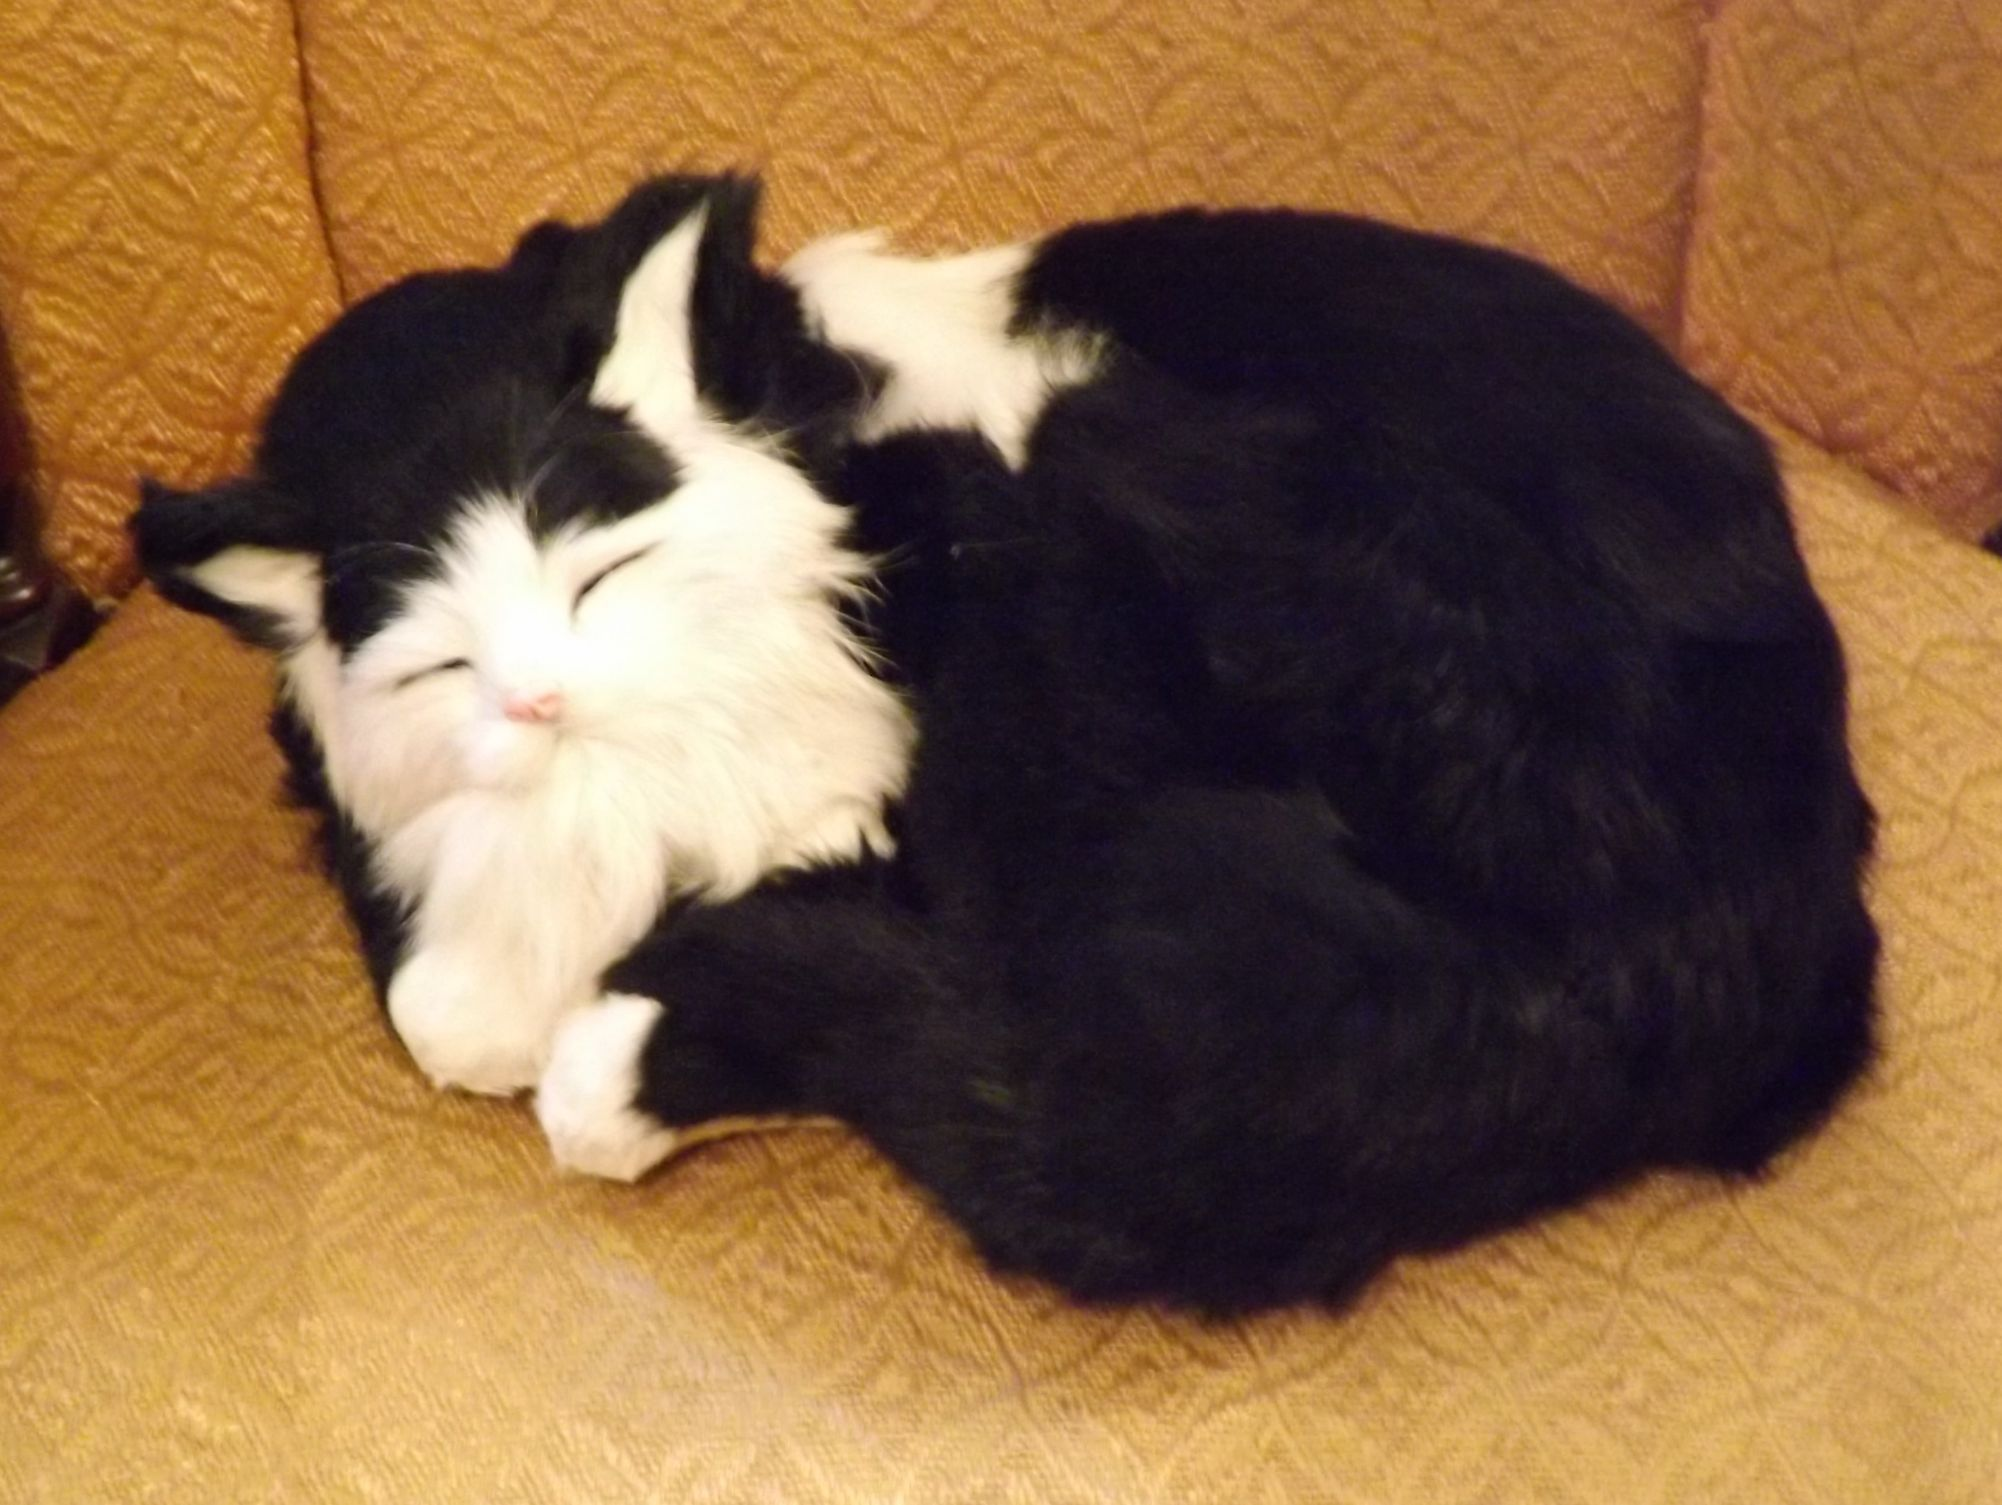 GHC285BL-Realistic-Black-and-White-Sleeping-Cat